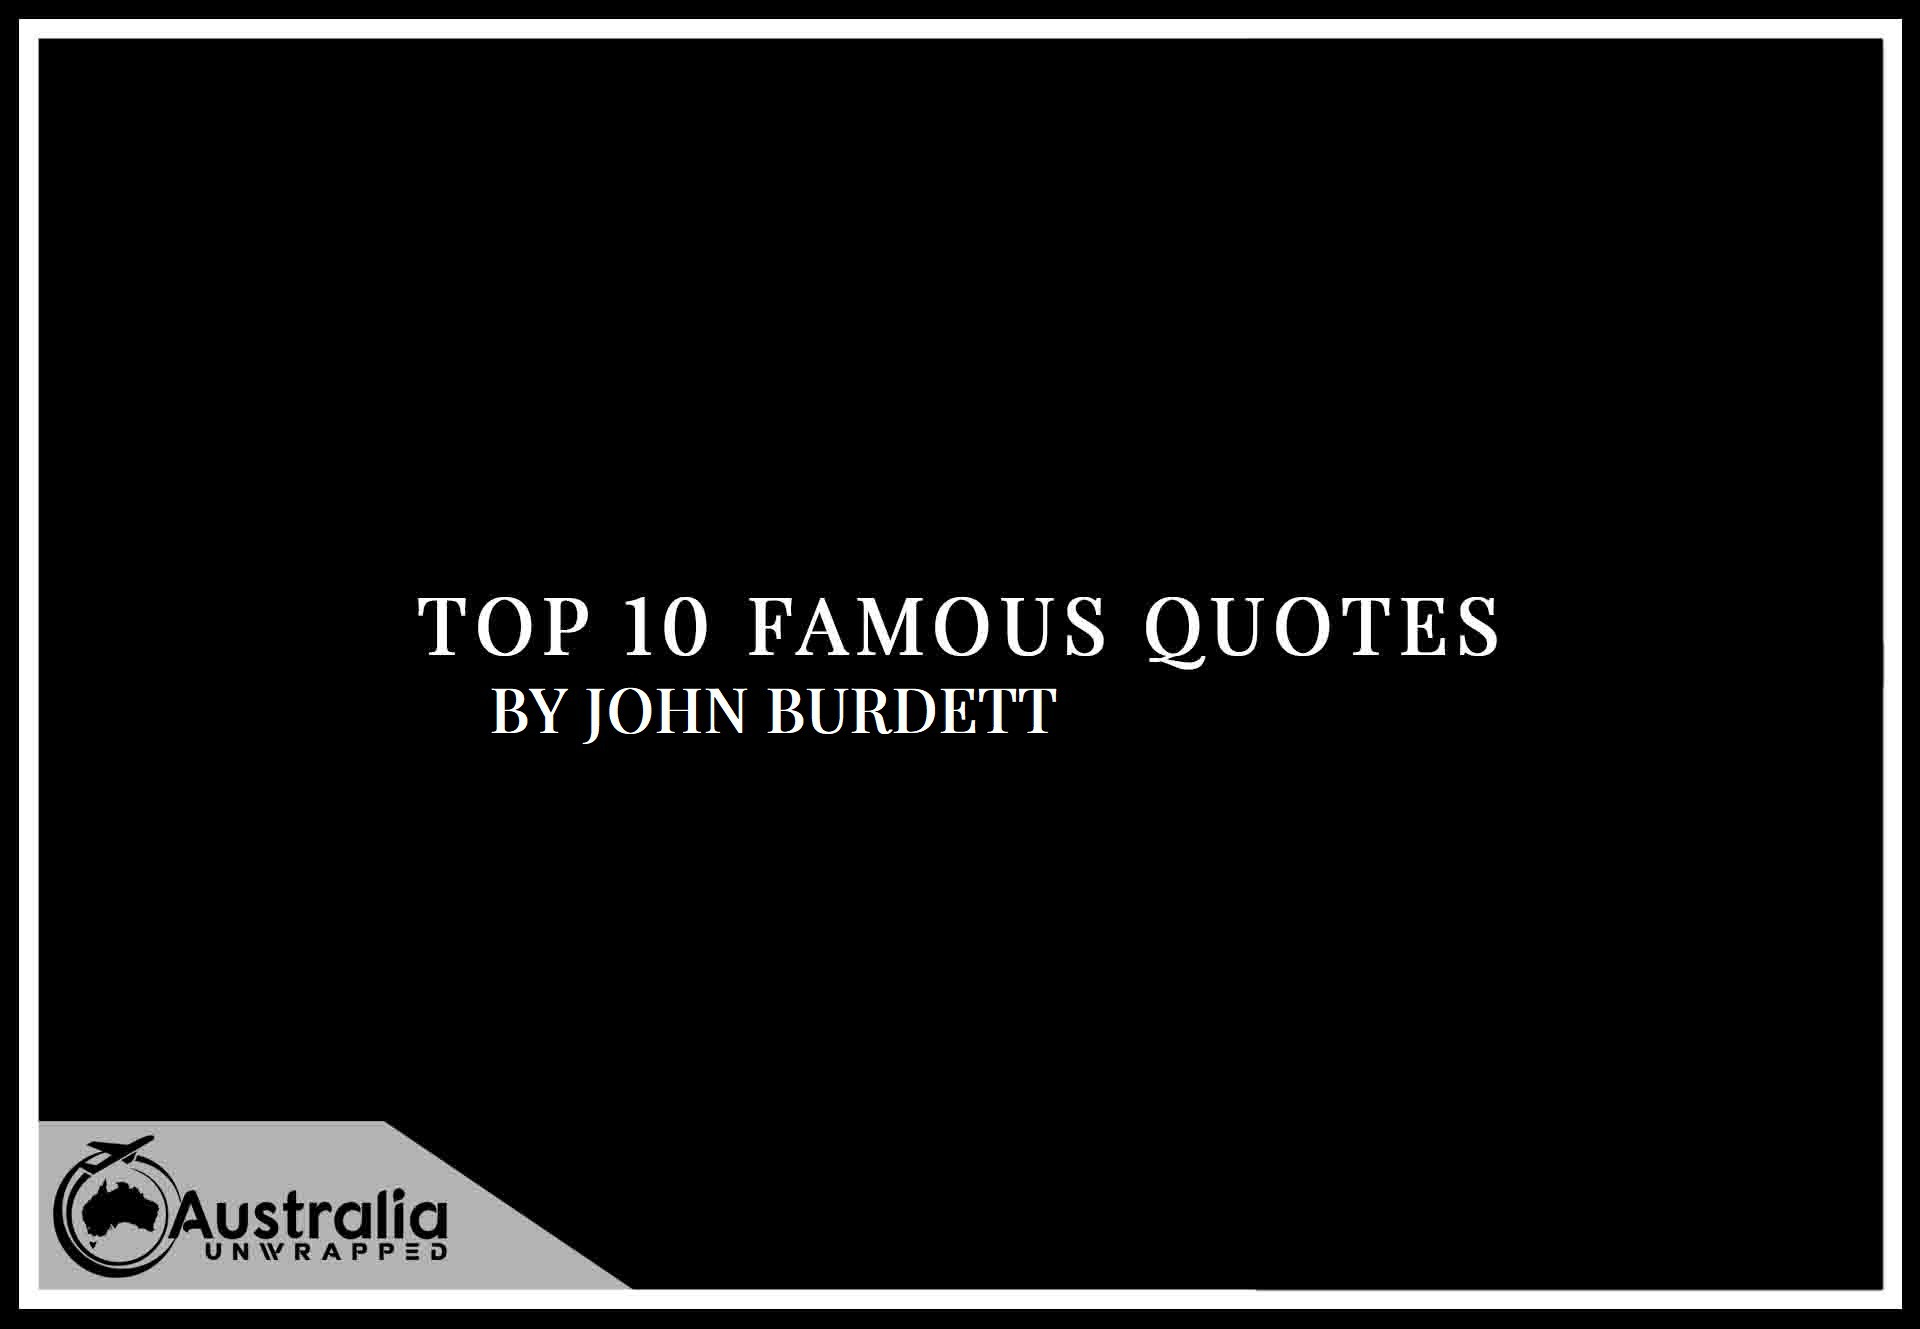 Top 10 Famous Quotes by Author John Burdett